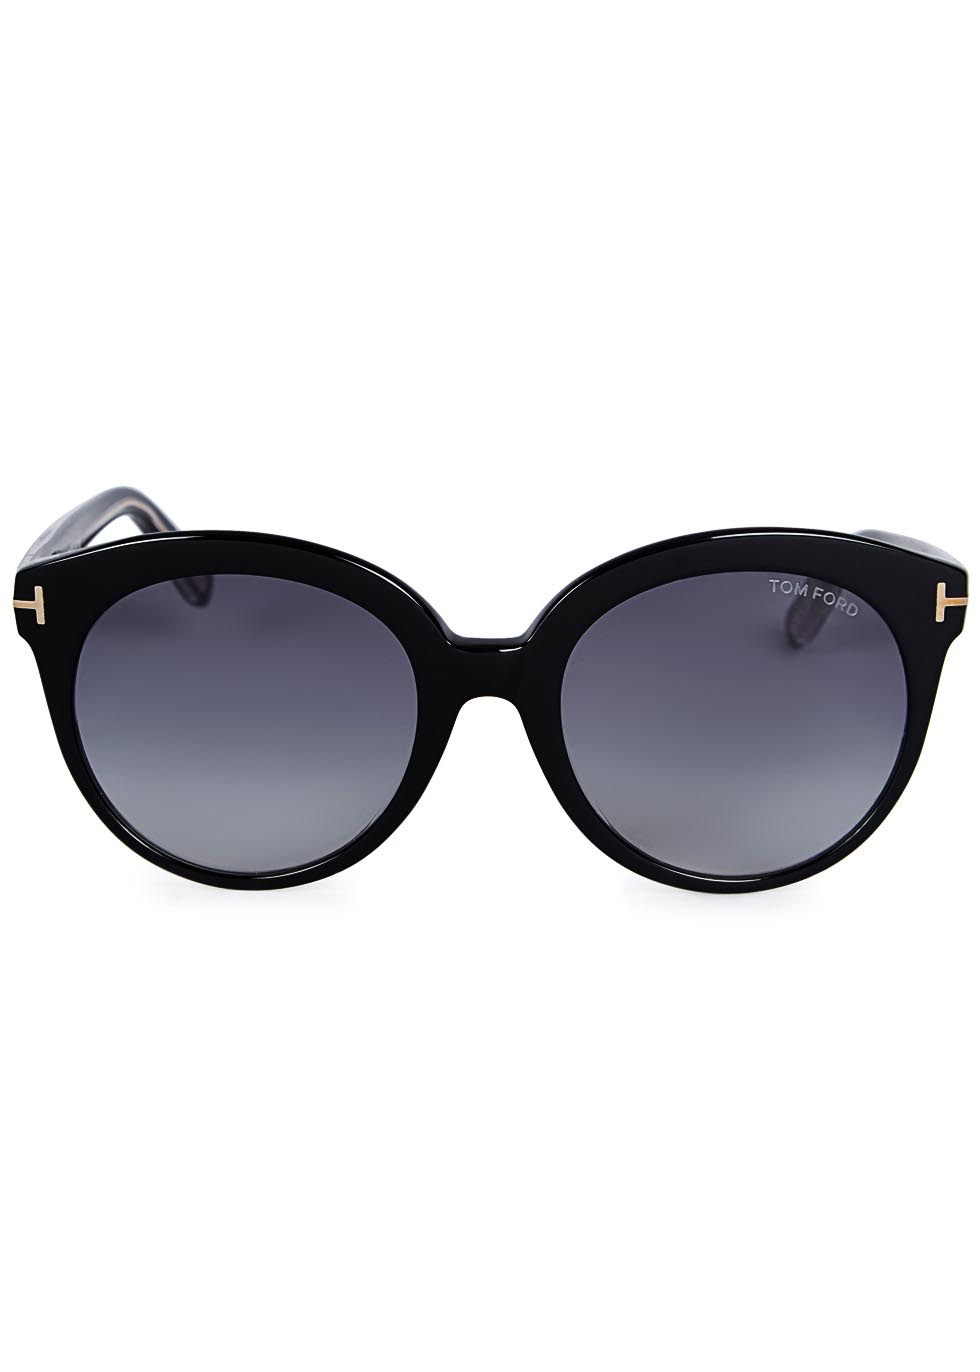 Monica black round-frame sunglasses - Tom Ford Eyewear